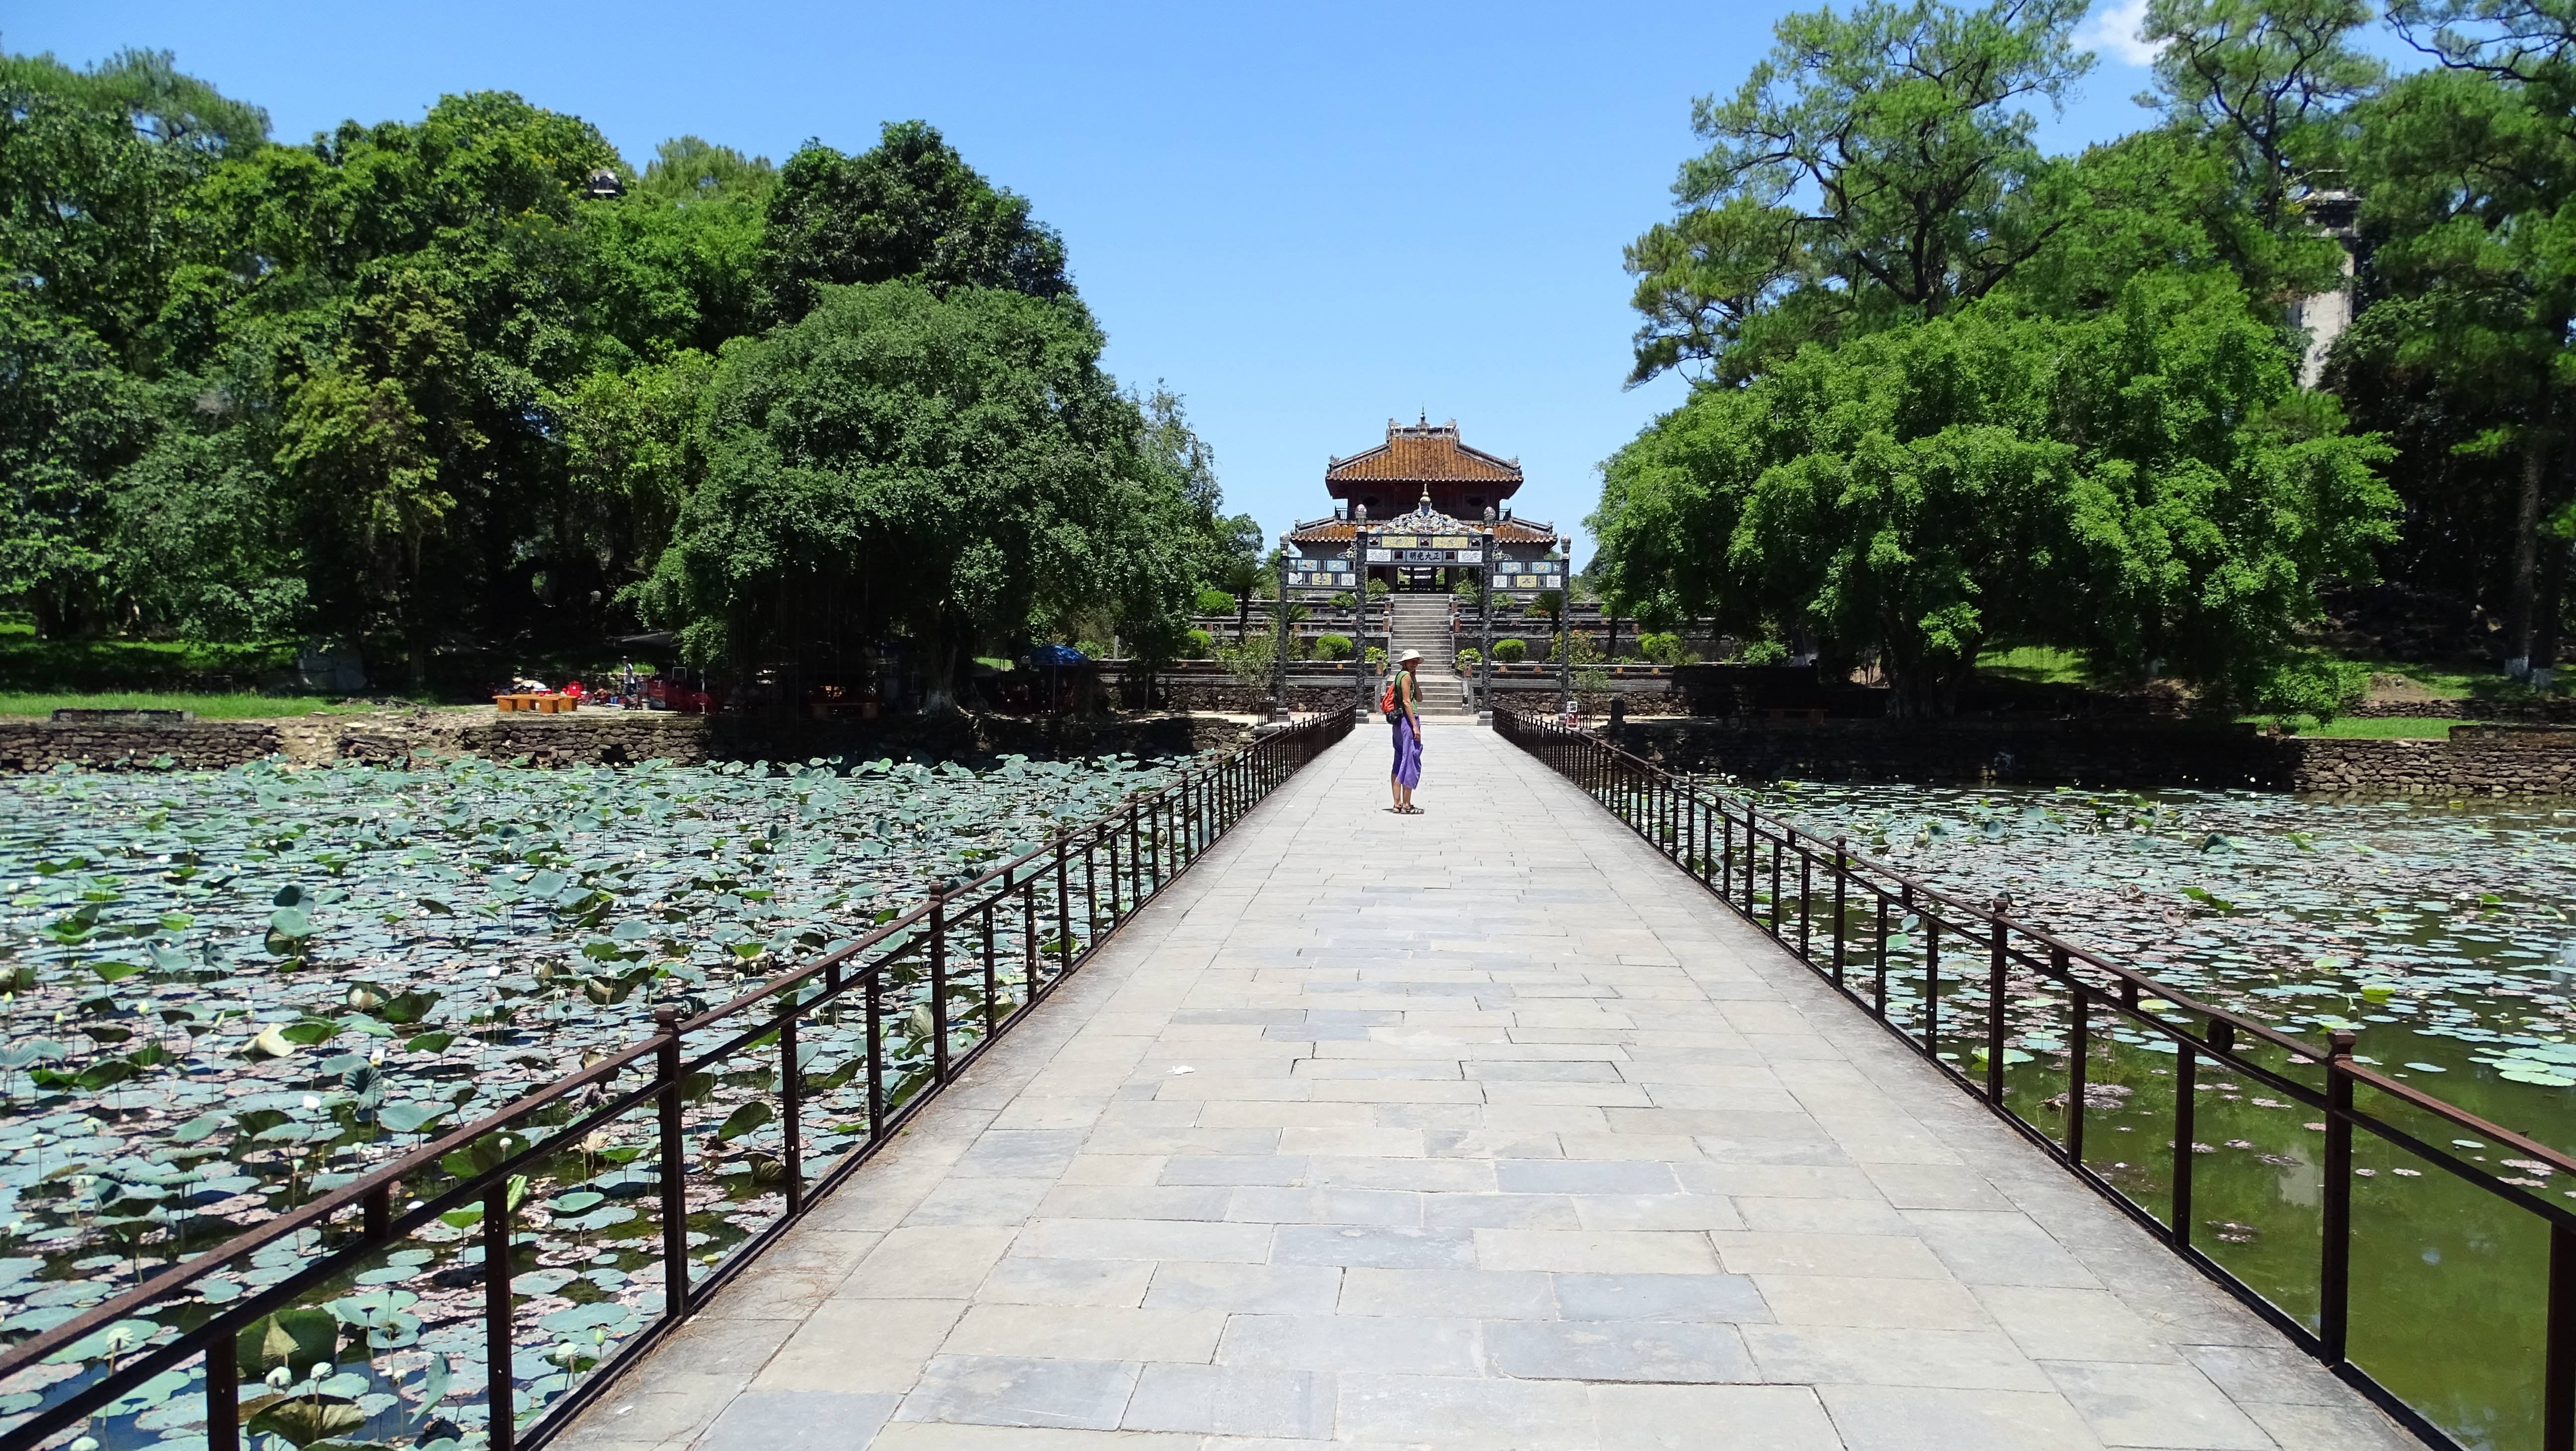 The author standing on the bridge over a a pond full of lotus flowers, leading to one of many pagodas at Minh Manh tomb